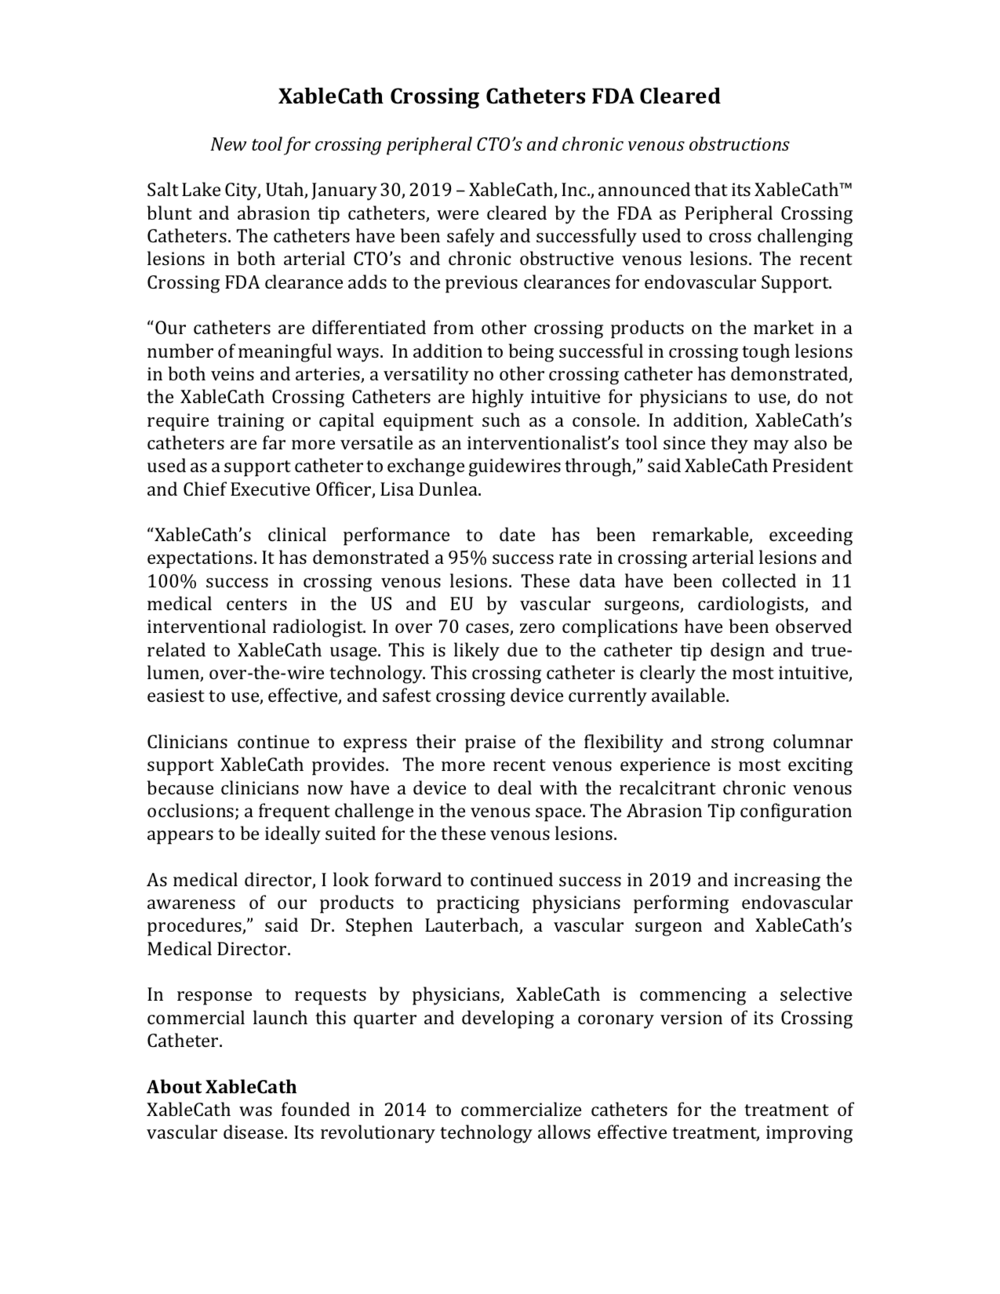 Click for a PDF of the press release